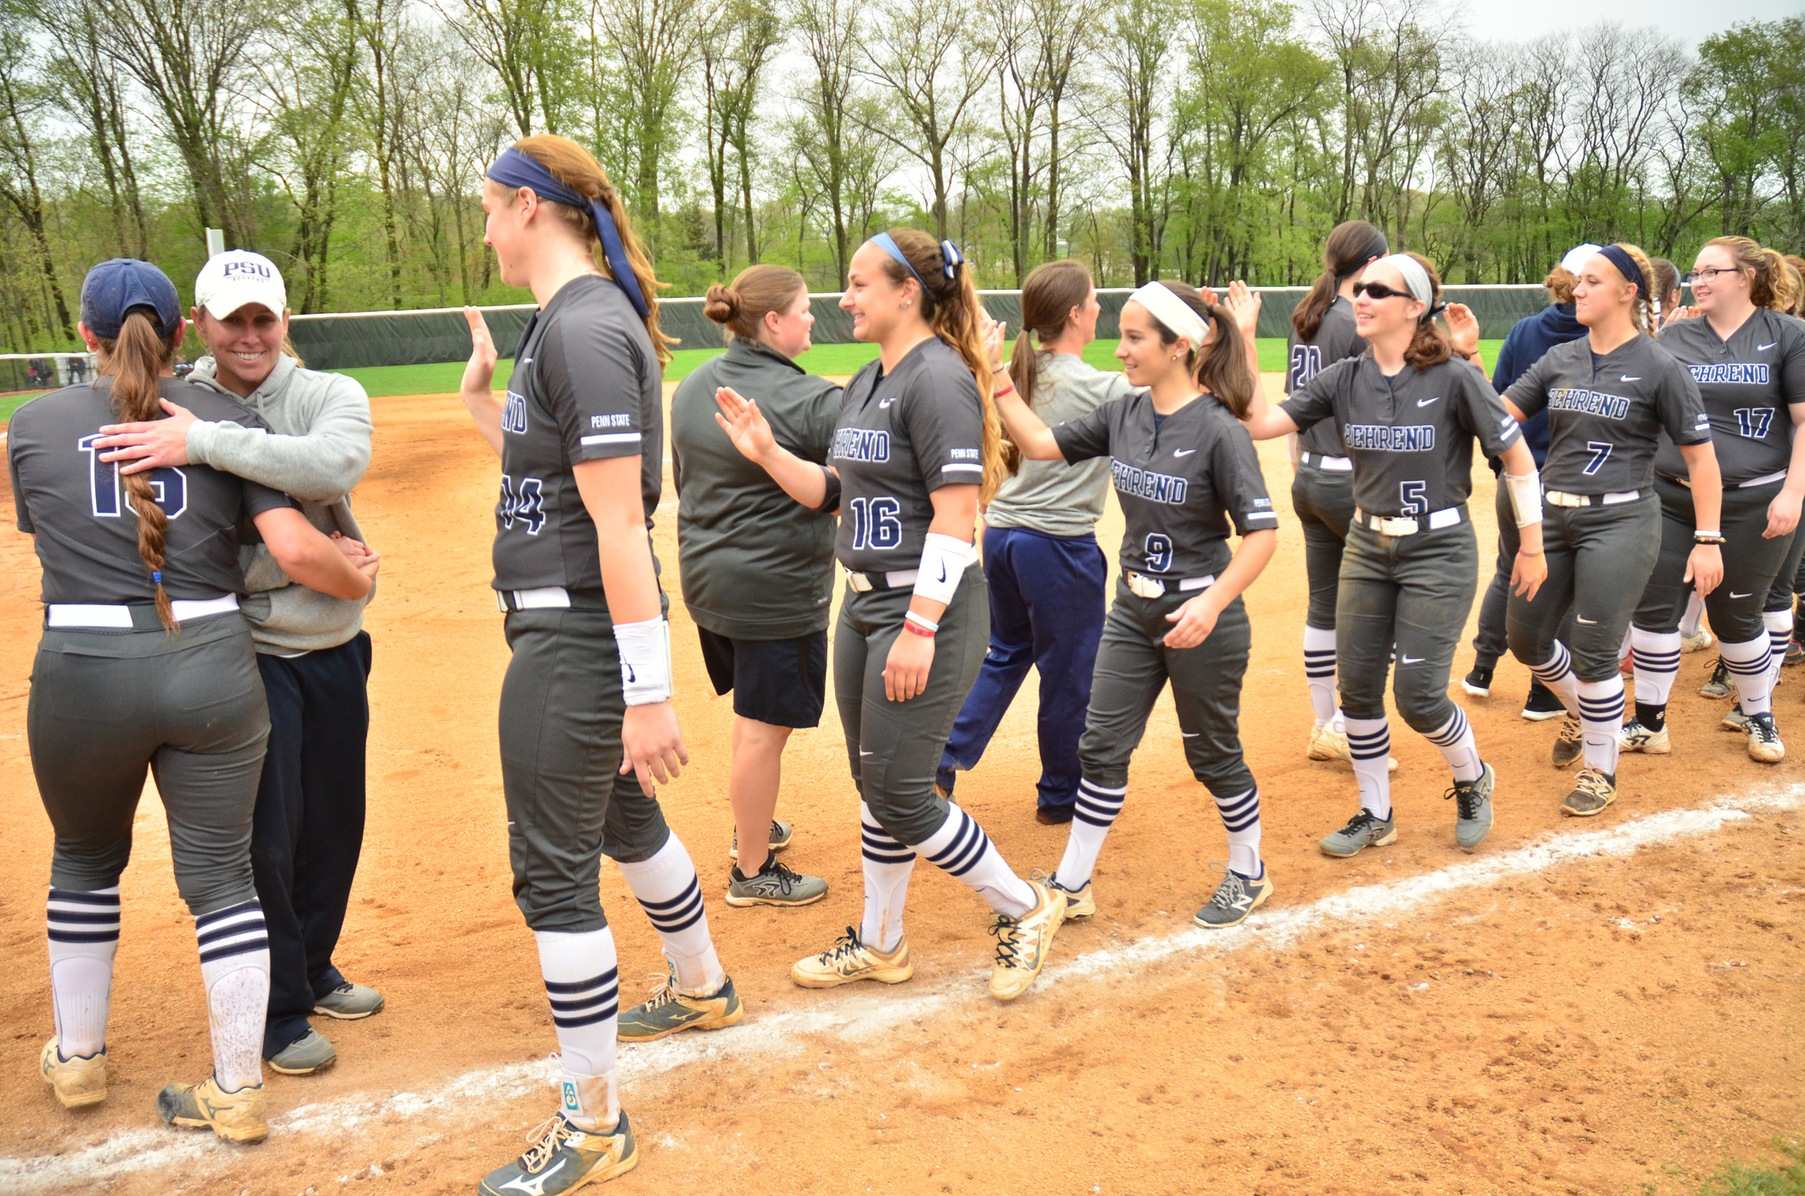 2018 AMCC Spring Sportsmanship Teams Announced